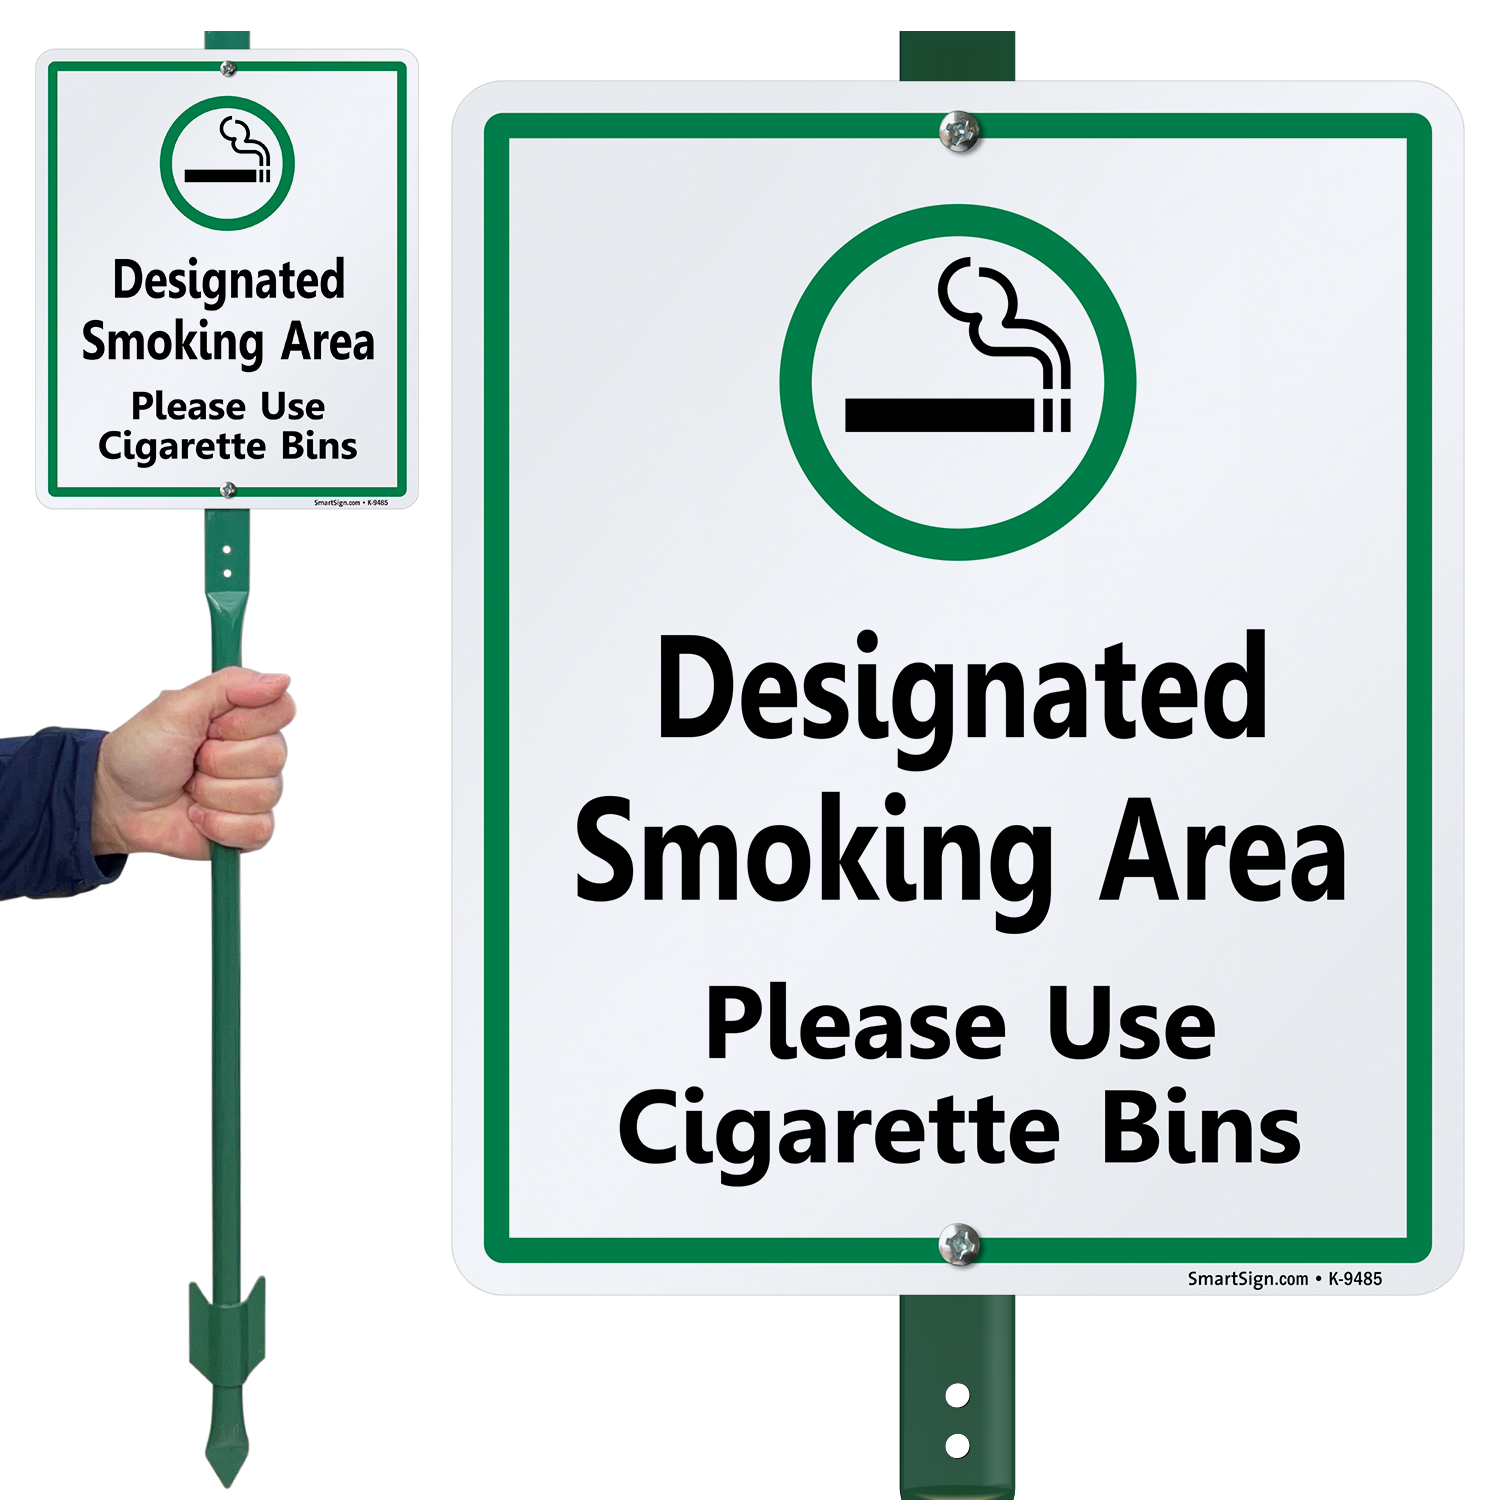 Smoking LawnBoss® Sign & Stake Kit: Designated Smoking Area Please Use  Cigarette Bins (K-9485) Learn More.